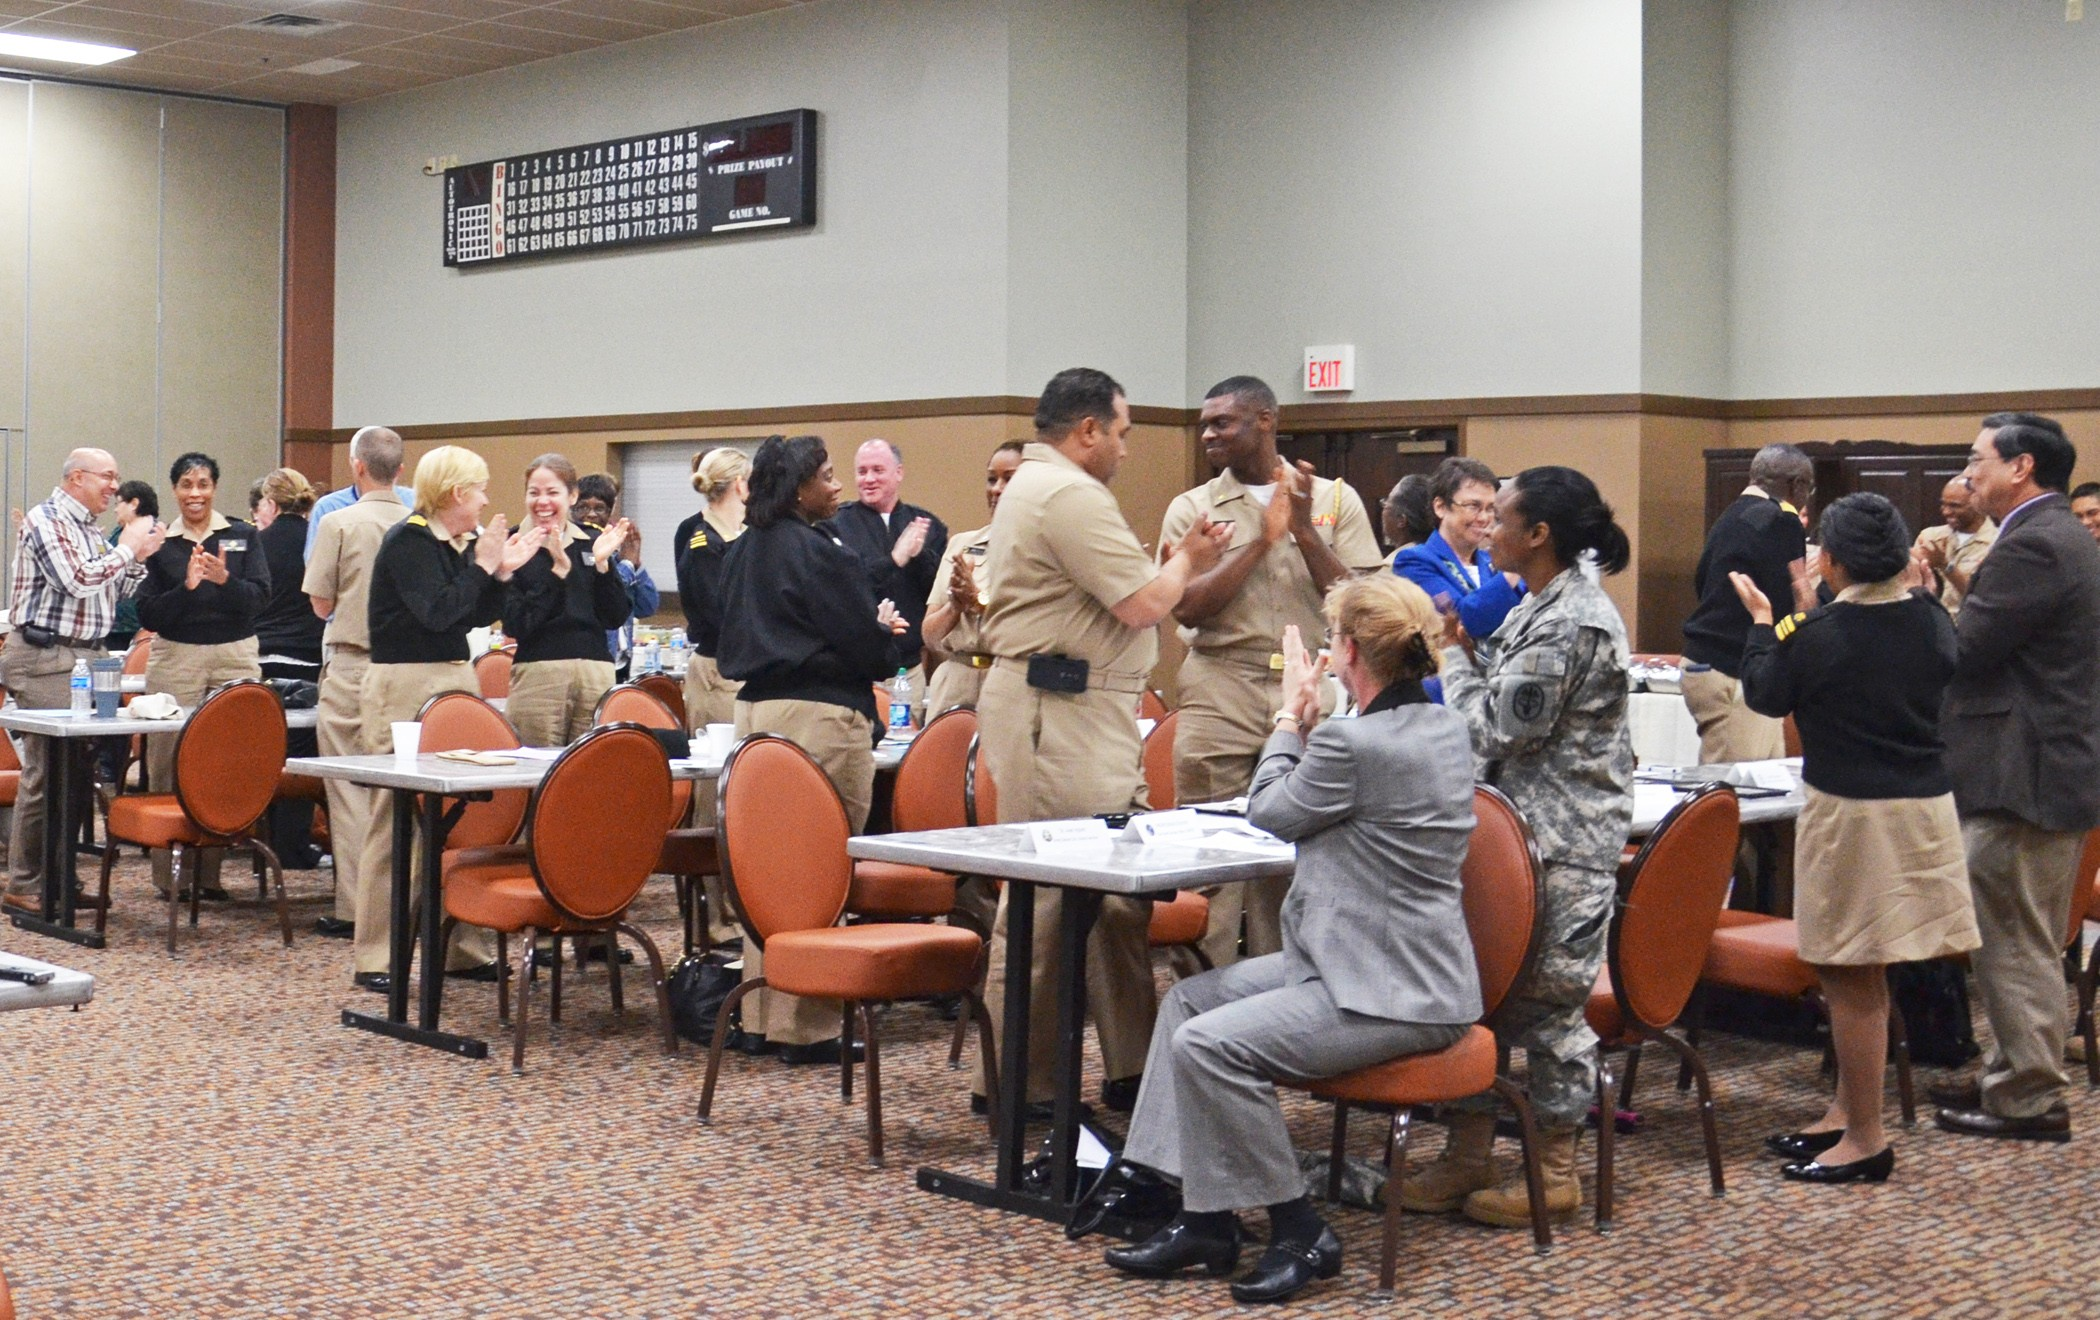 fort hood social workers honored article the united states army original